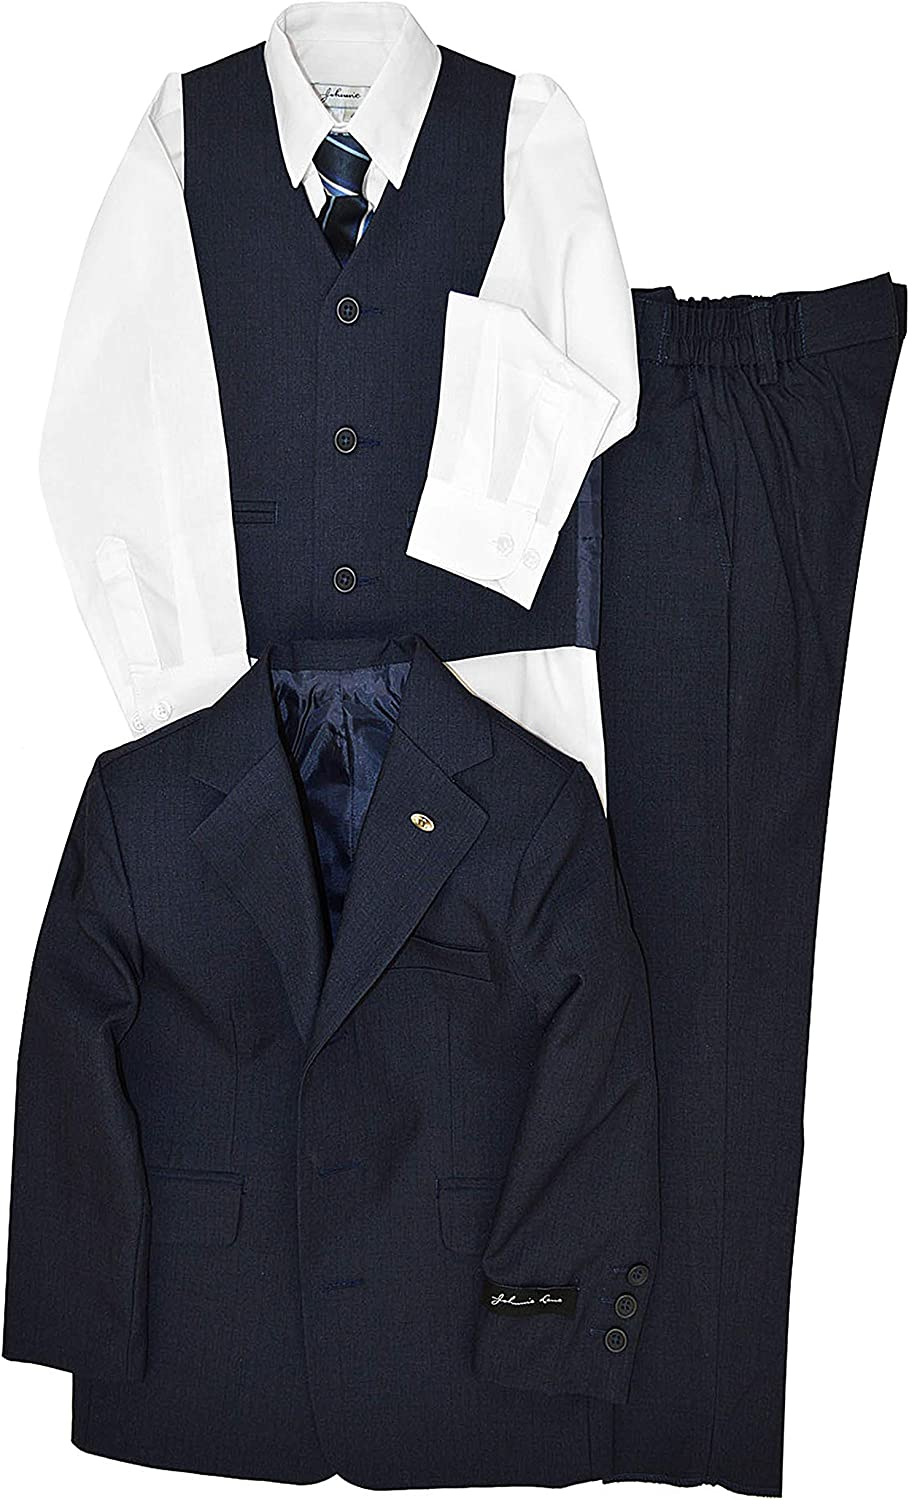 Johnnie Lene Navy Blue At the price of surprise Color Textured Limited Special Price for Set Suit from Boys Bab